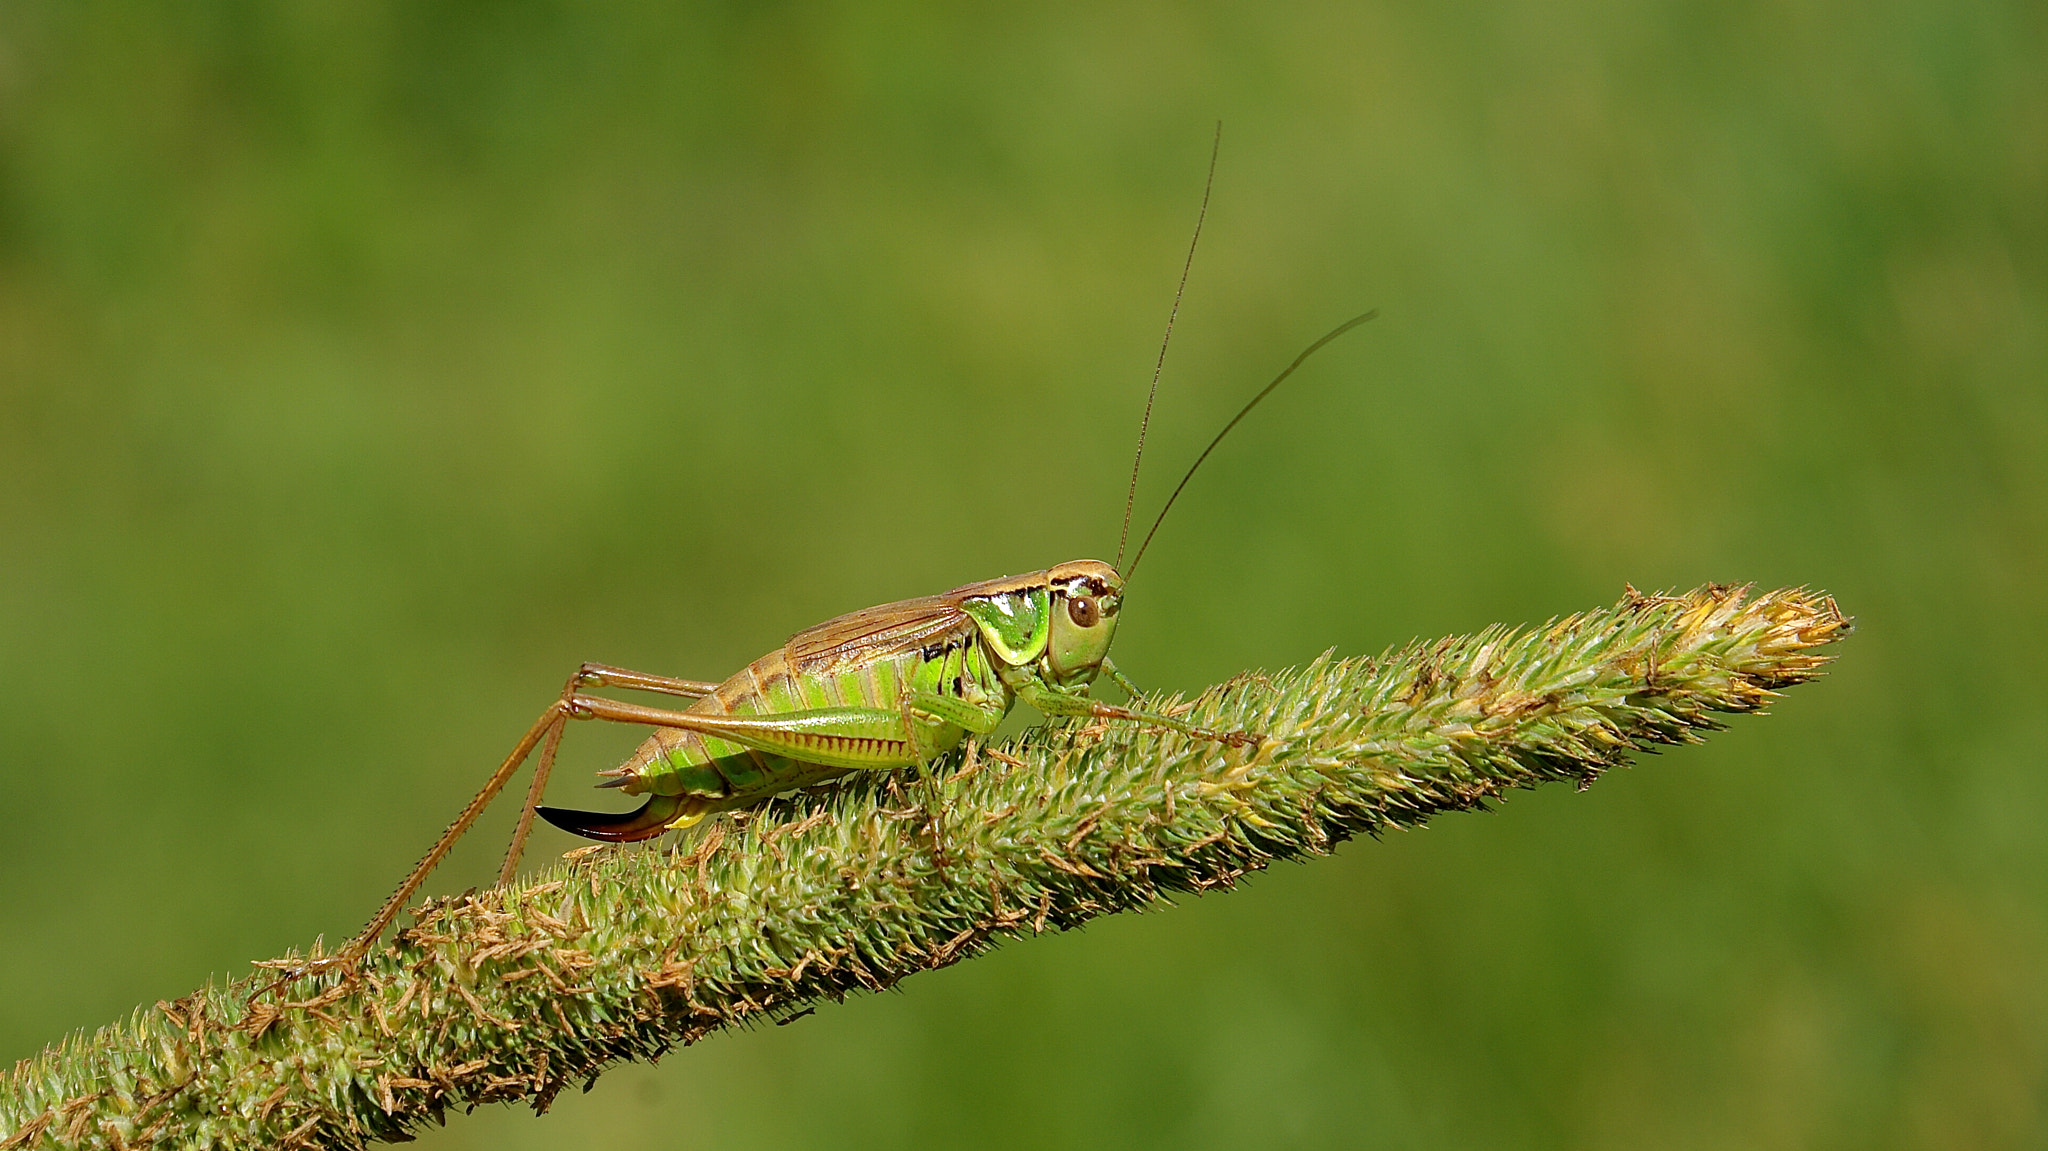 Photograph Field Cricket  by Zack Parton on 500px